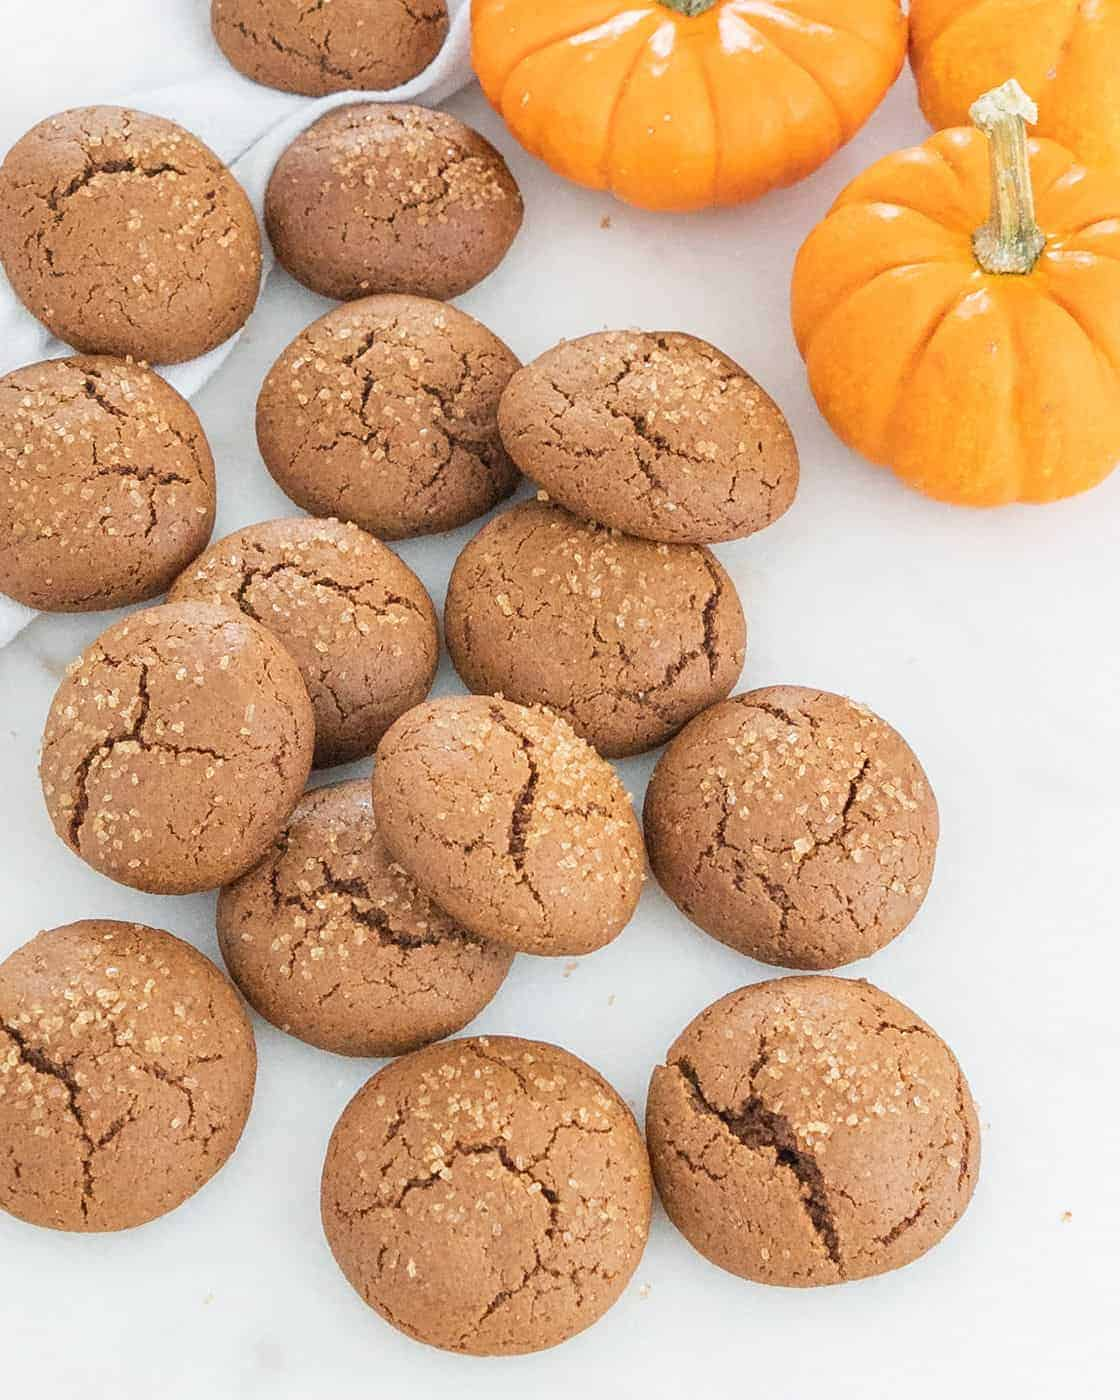 several pumpkin molasses cookies with pumpkin in the background against a white surface